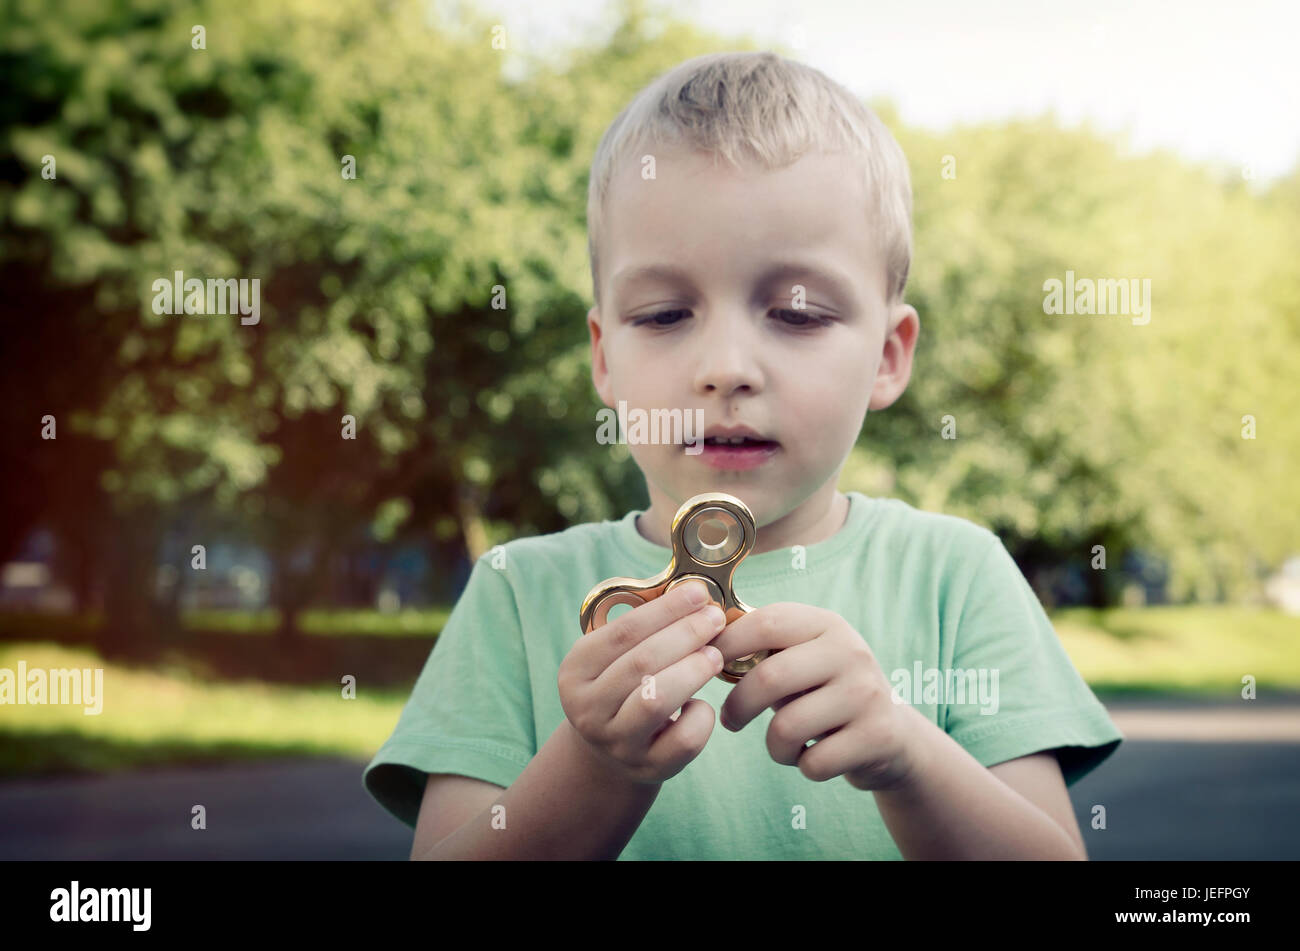 Little boy with a fidget spinner outdoors. spinner fidget child stress adhd attention fad boy concept - Stock Image